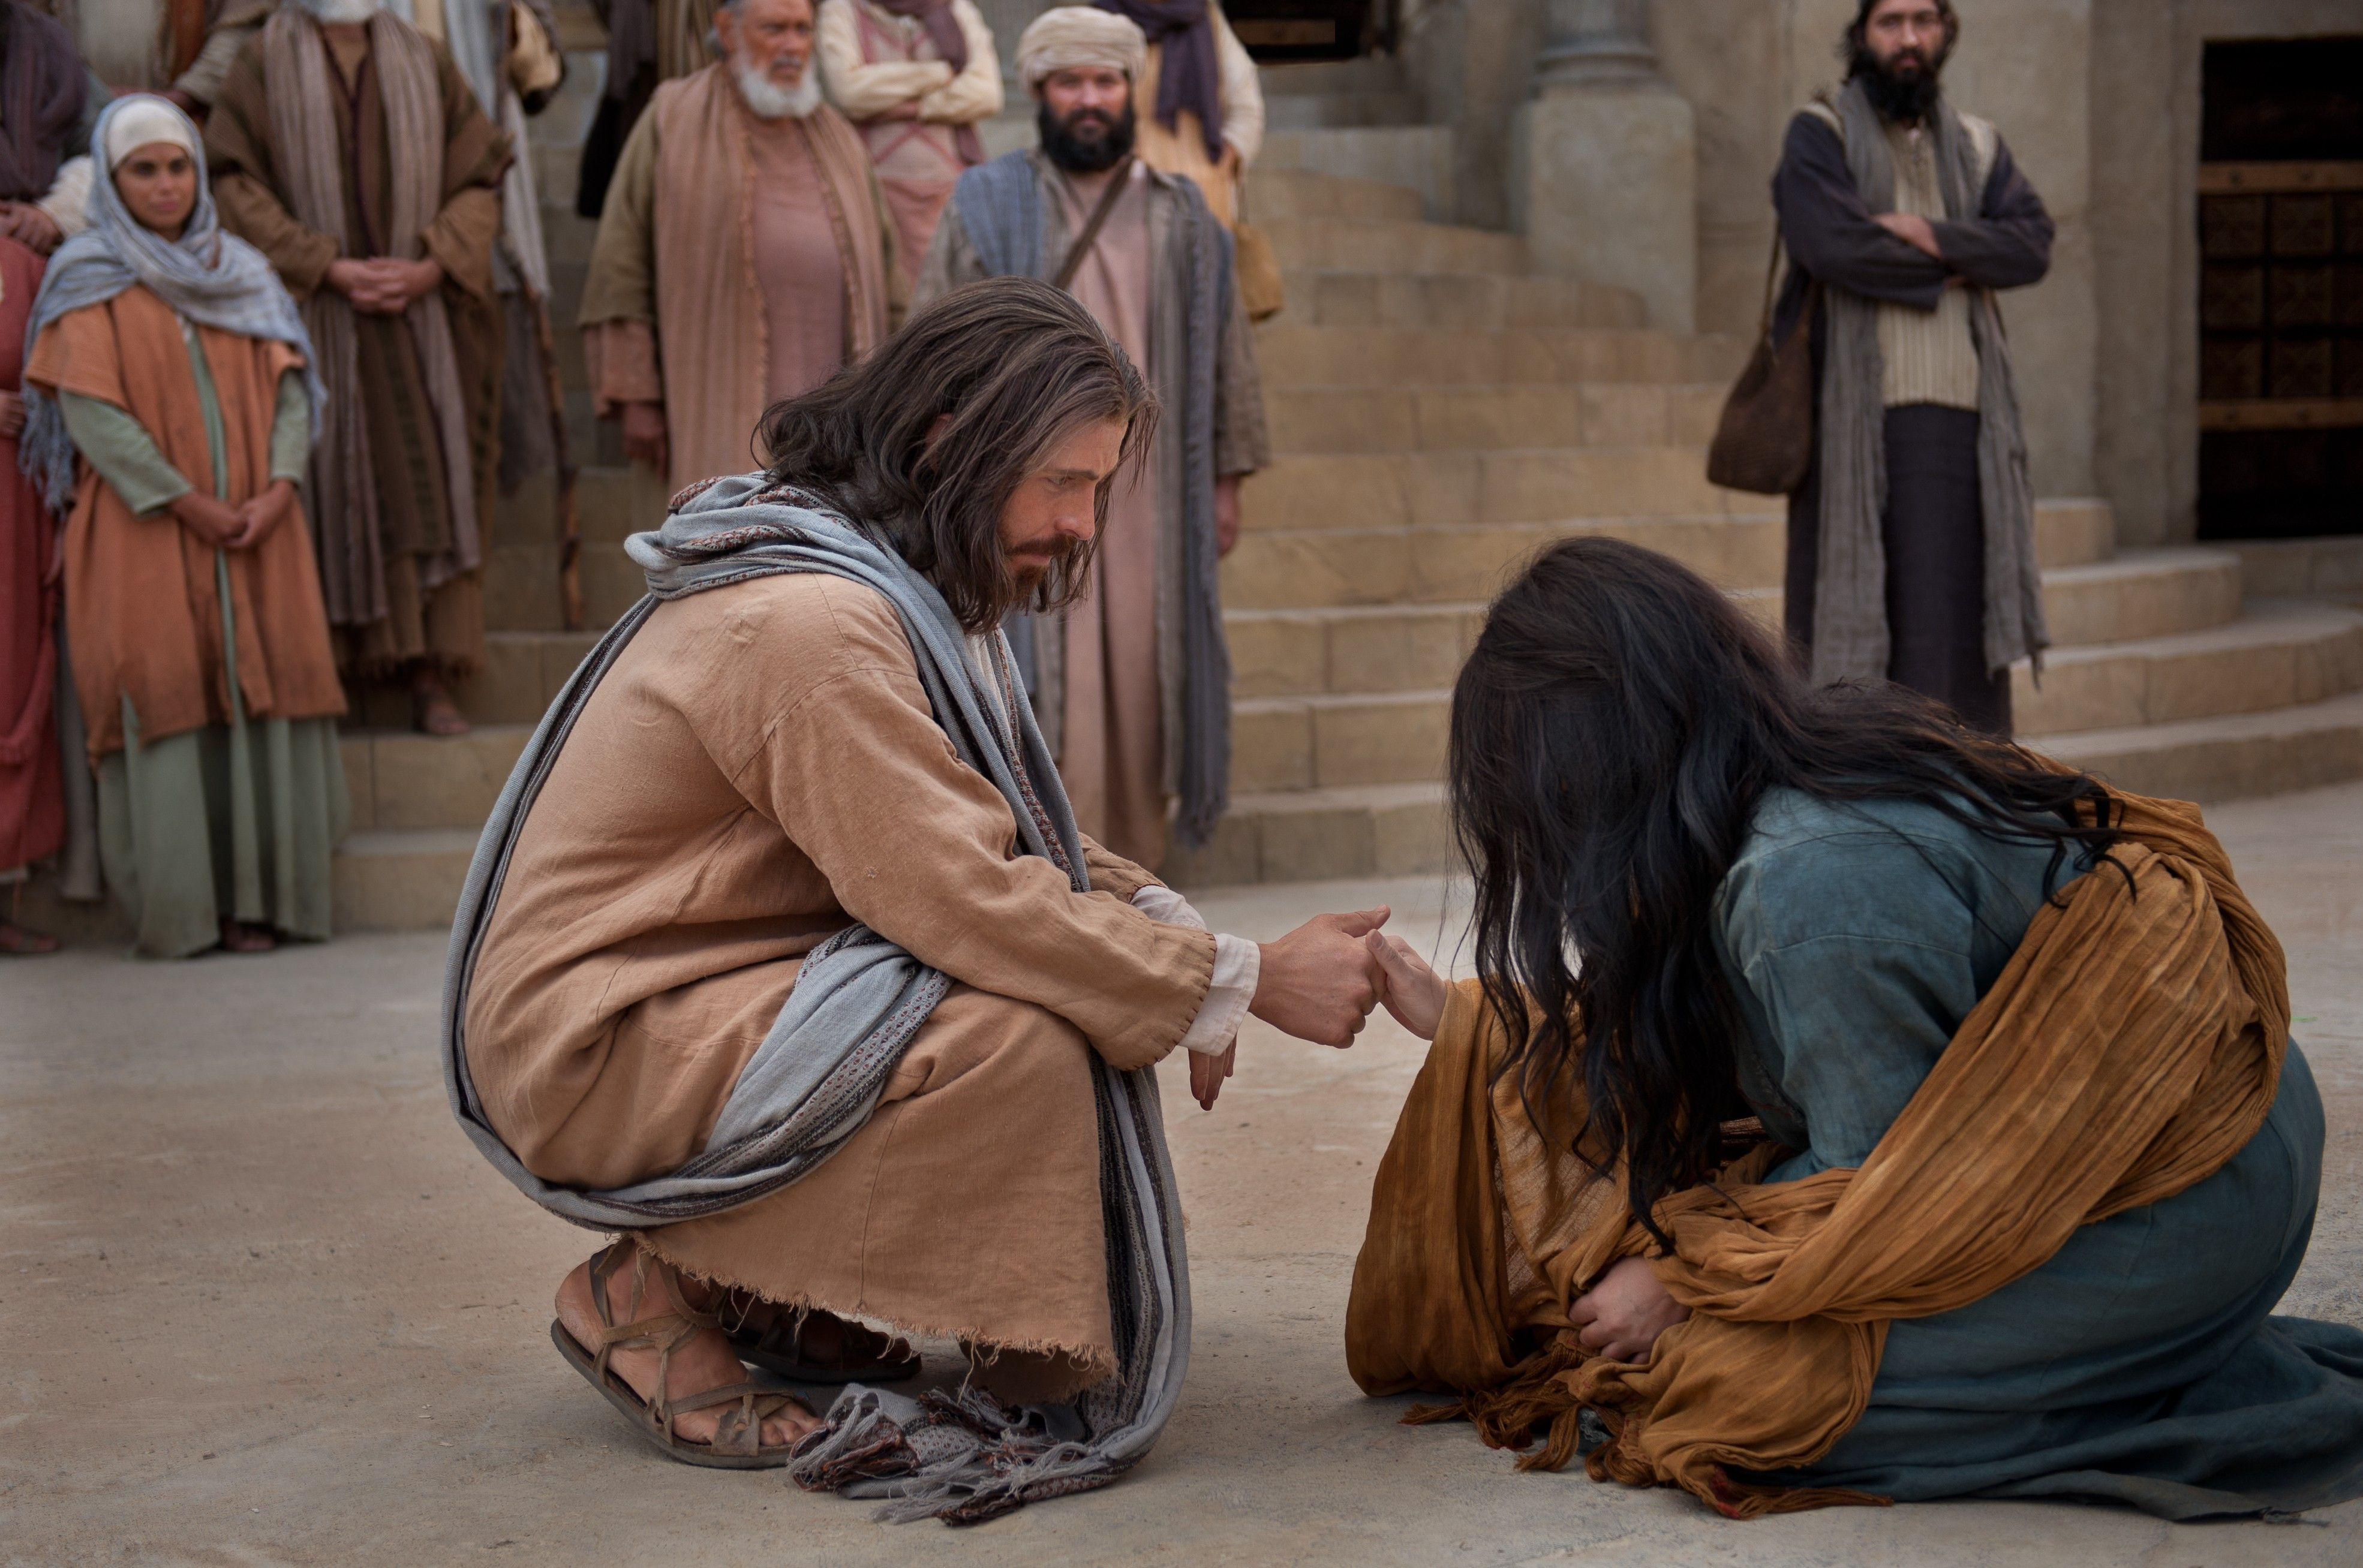 Jesus reaches out to help the woman taken in adultery.